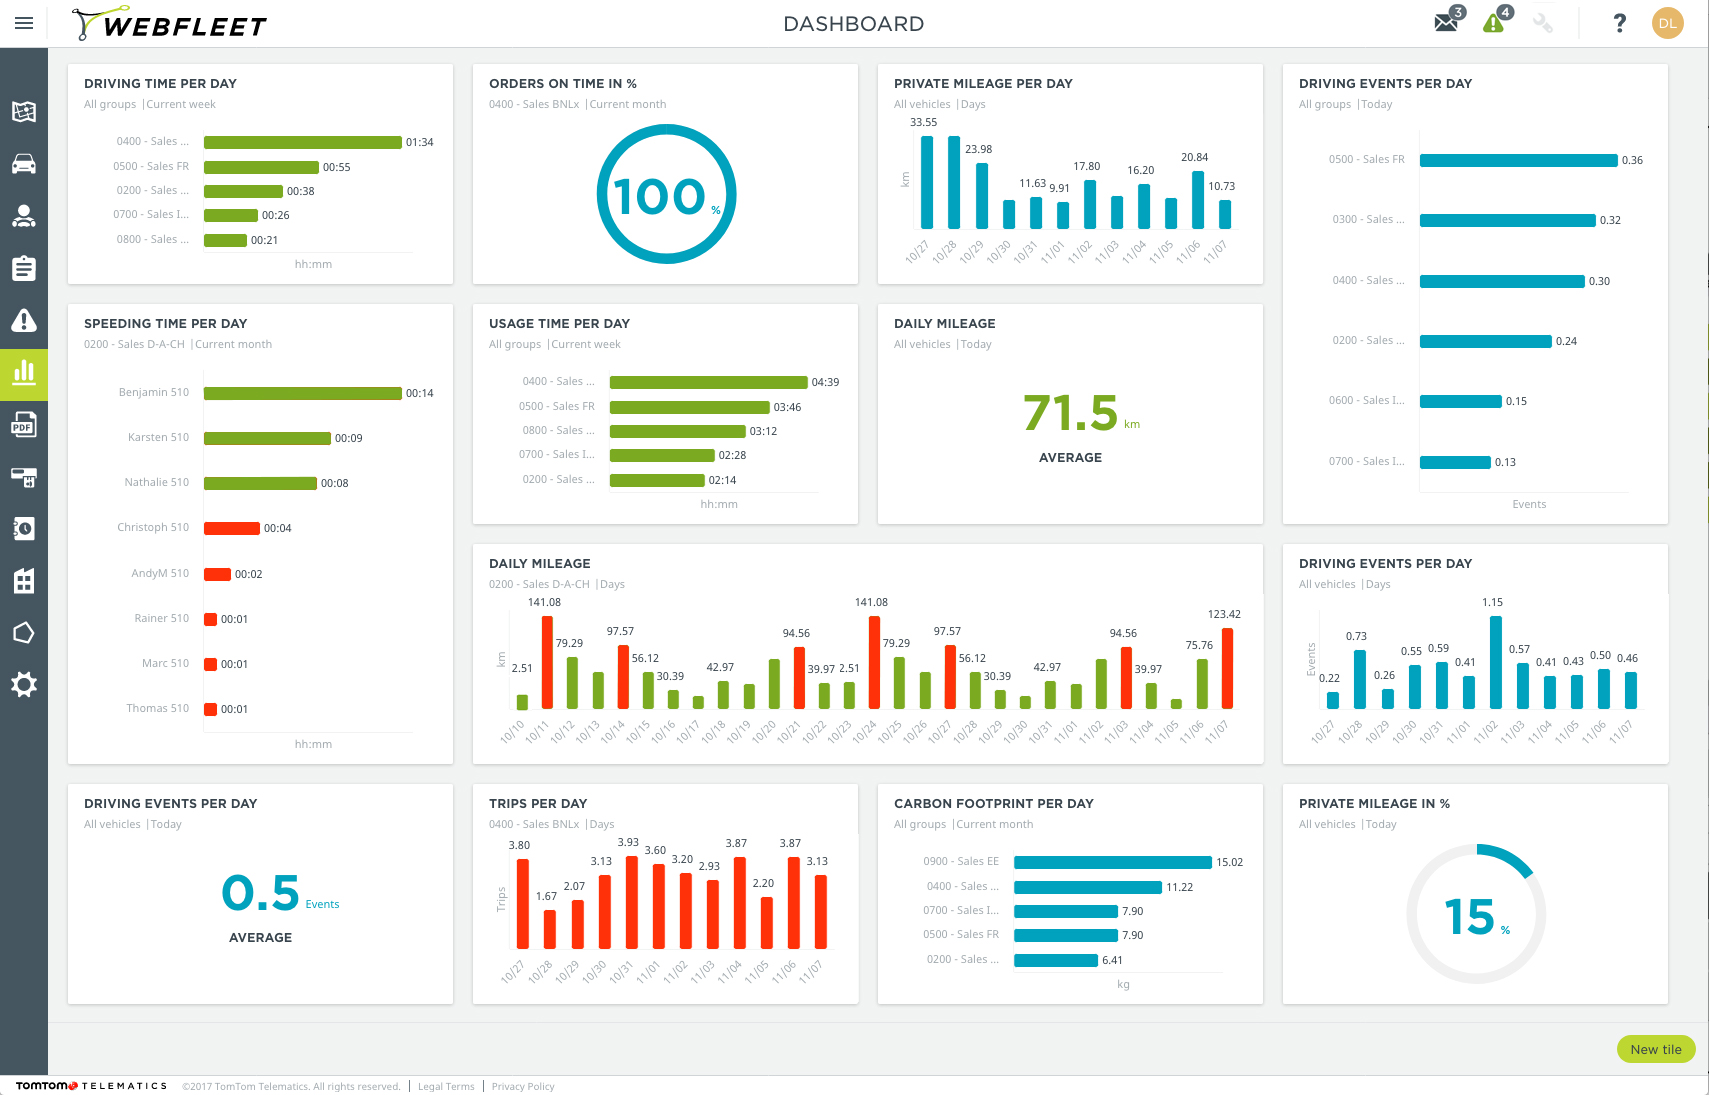 wf_screenshot_dashboard